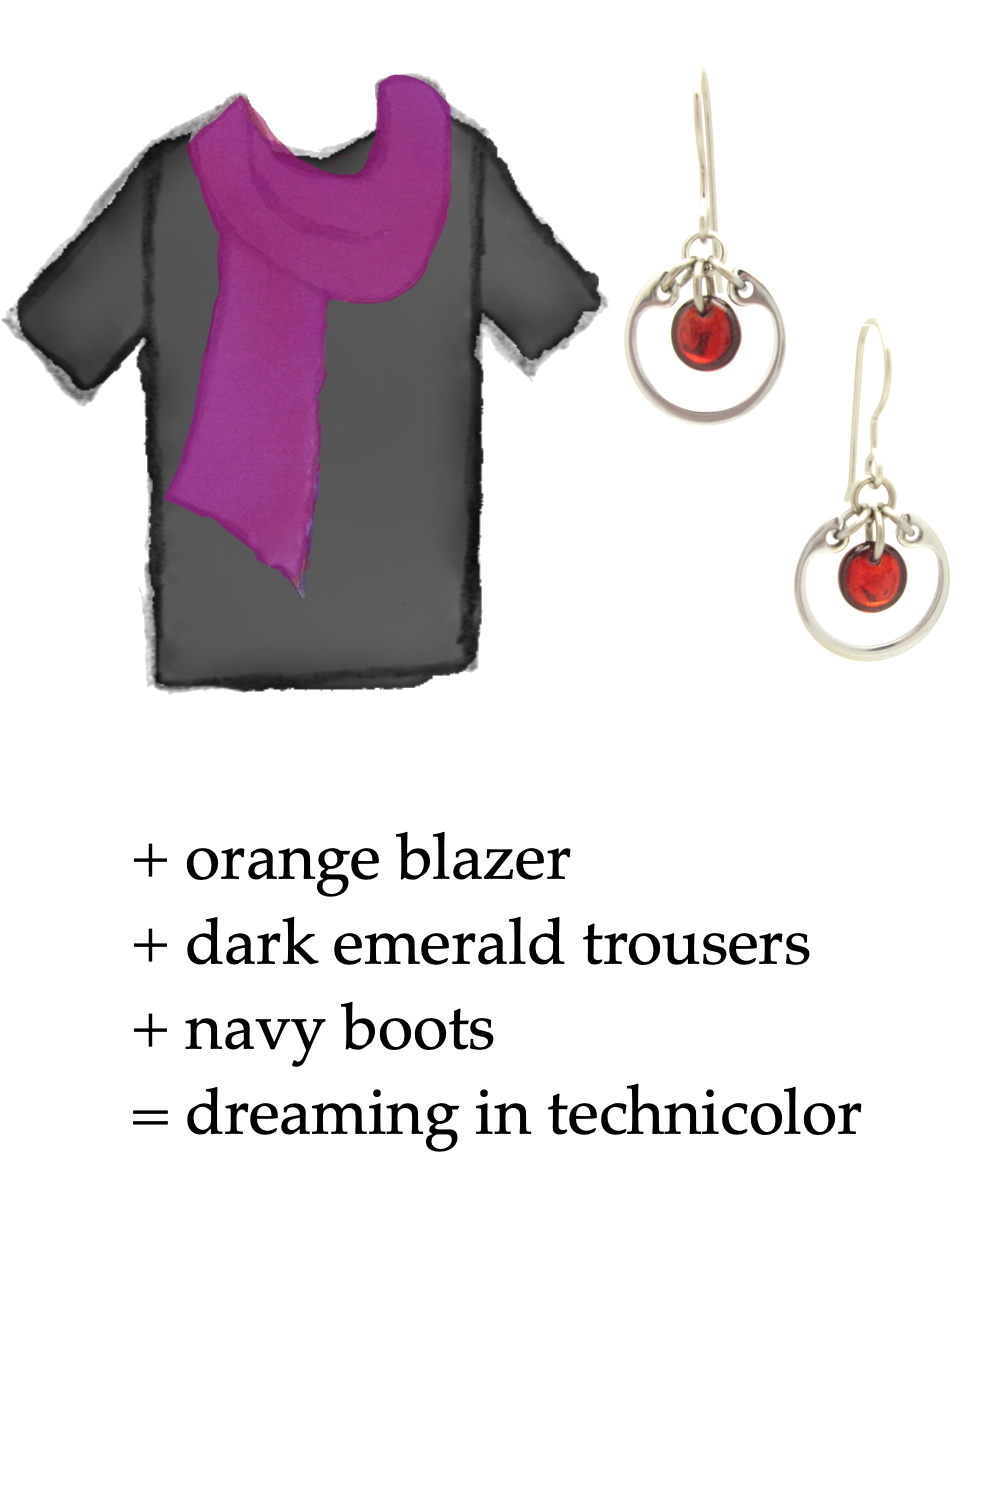 style sketch of a black tee shirt and fuchsia scarf with Wraptillion's small modern circle silver-toned earrings in red; text on image reads: + orange blazer + dark emerald trousers + navy boots = dreaming in technicolor